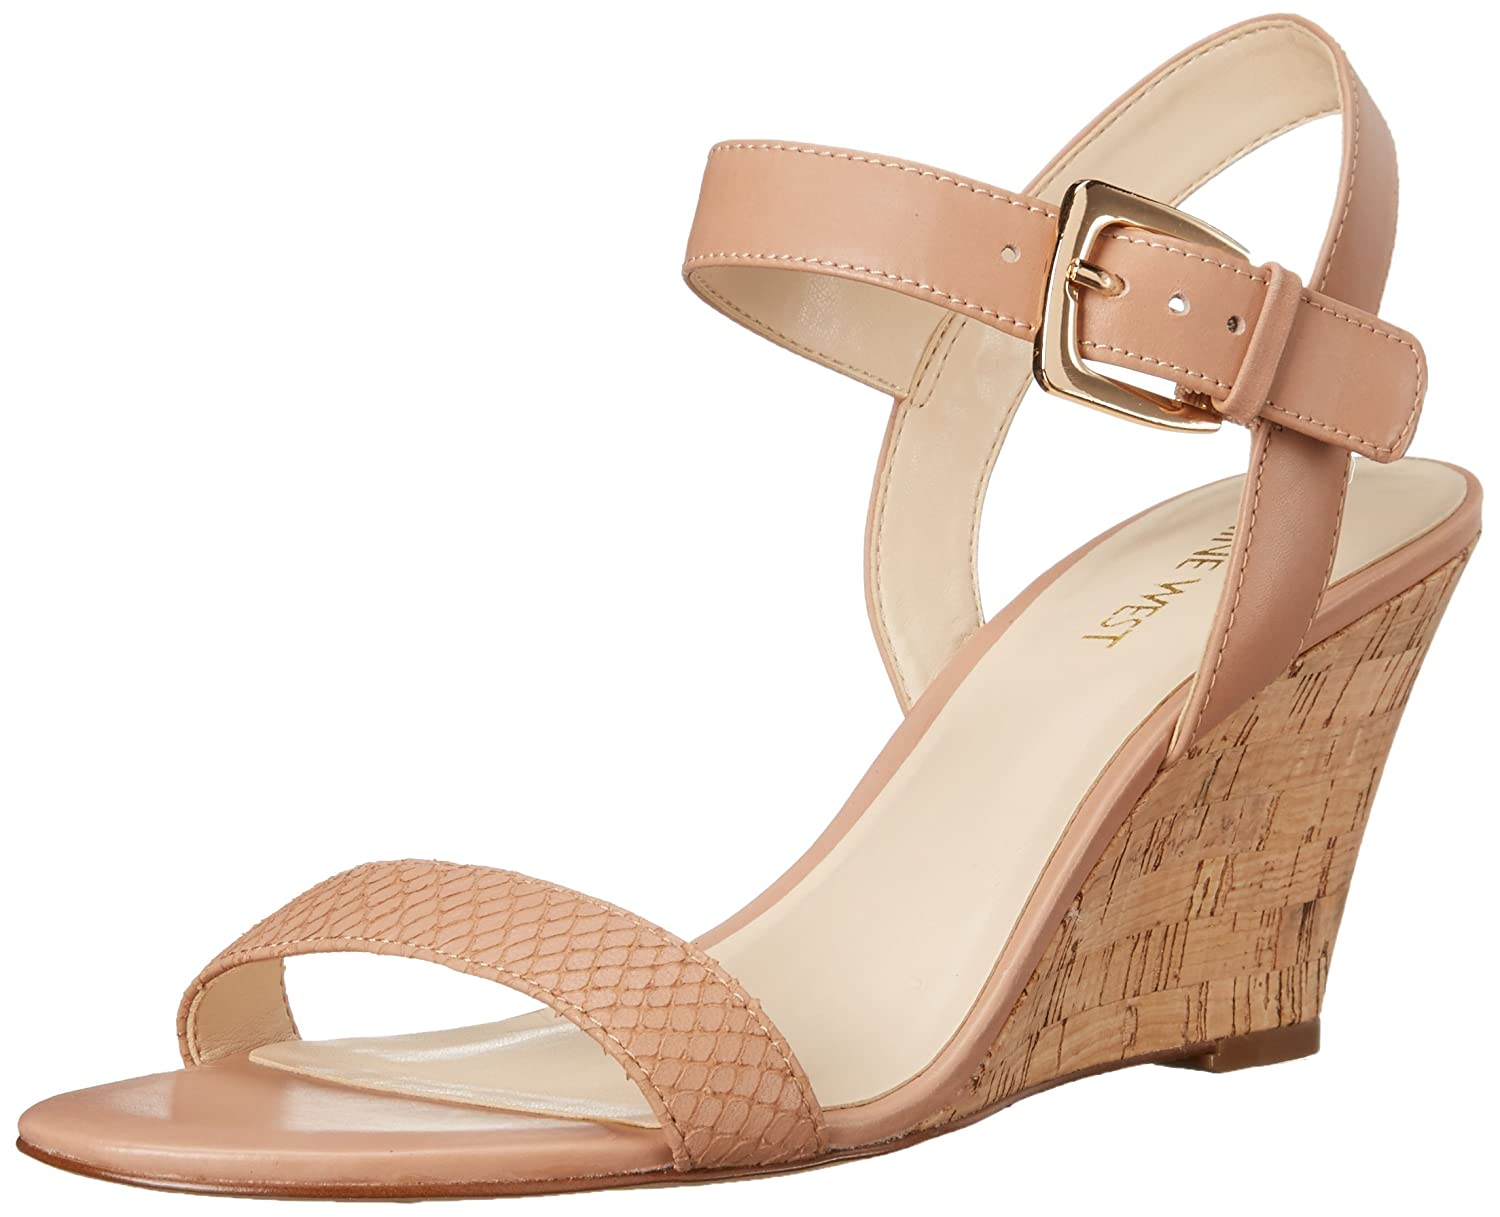 Nine West Women's Kiani Leather Wedge Sandal B017MOJ340 11 B(M) US|Natural/Natural